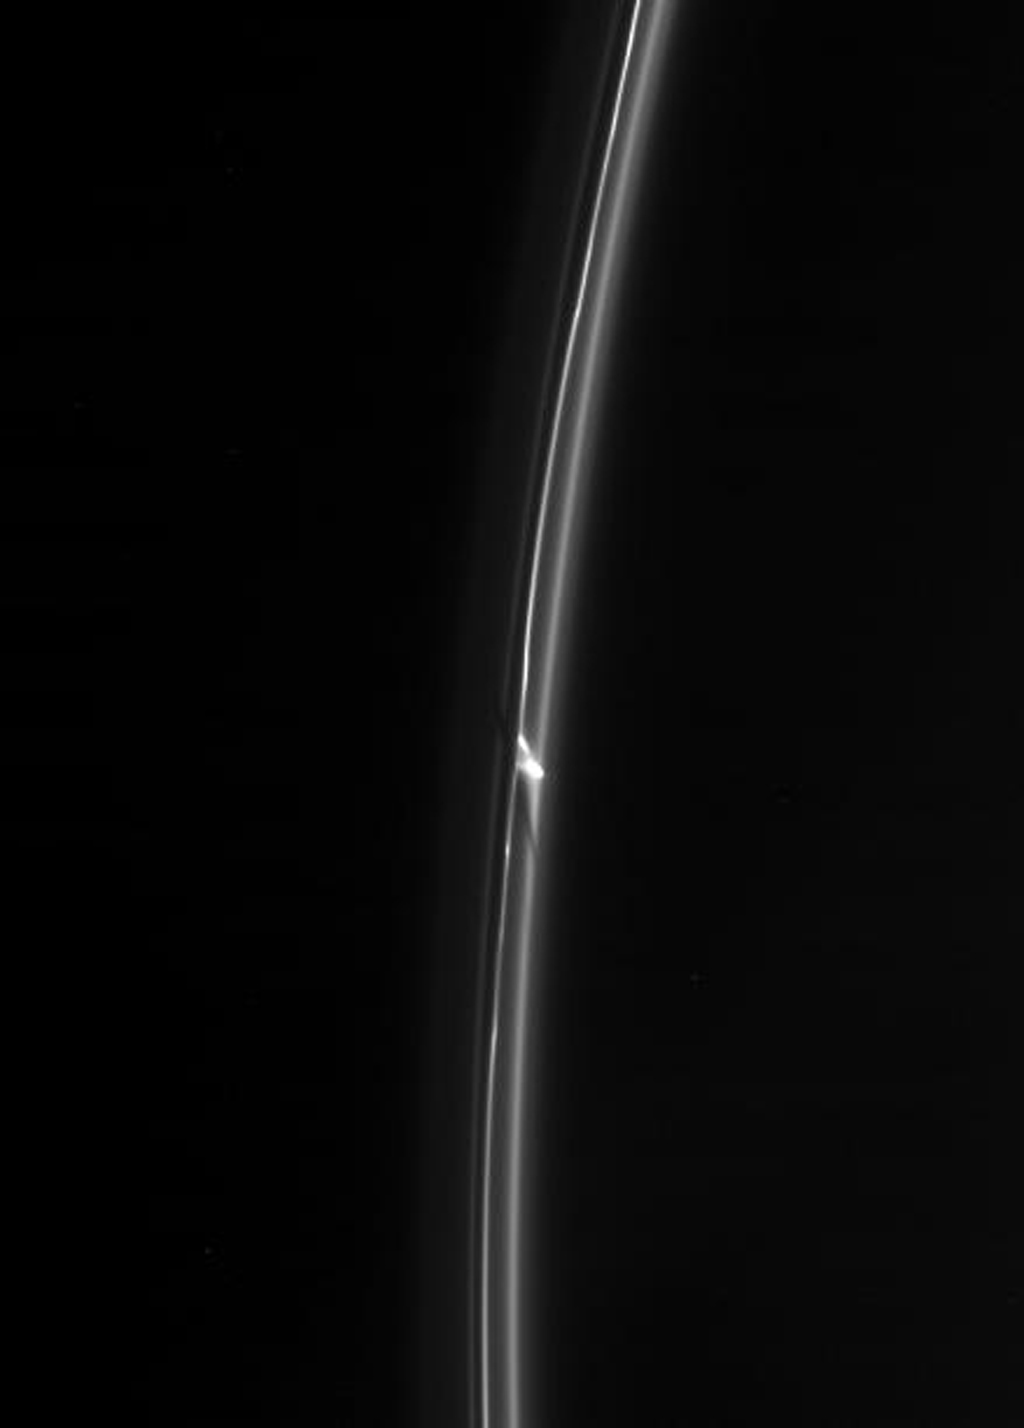 NASA's Cassini spacecraft spies an intriguing bright clump in Saturn's F ring. Also of interest is the dark gash that appears to cut through the ring immediately below the clump.